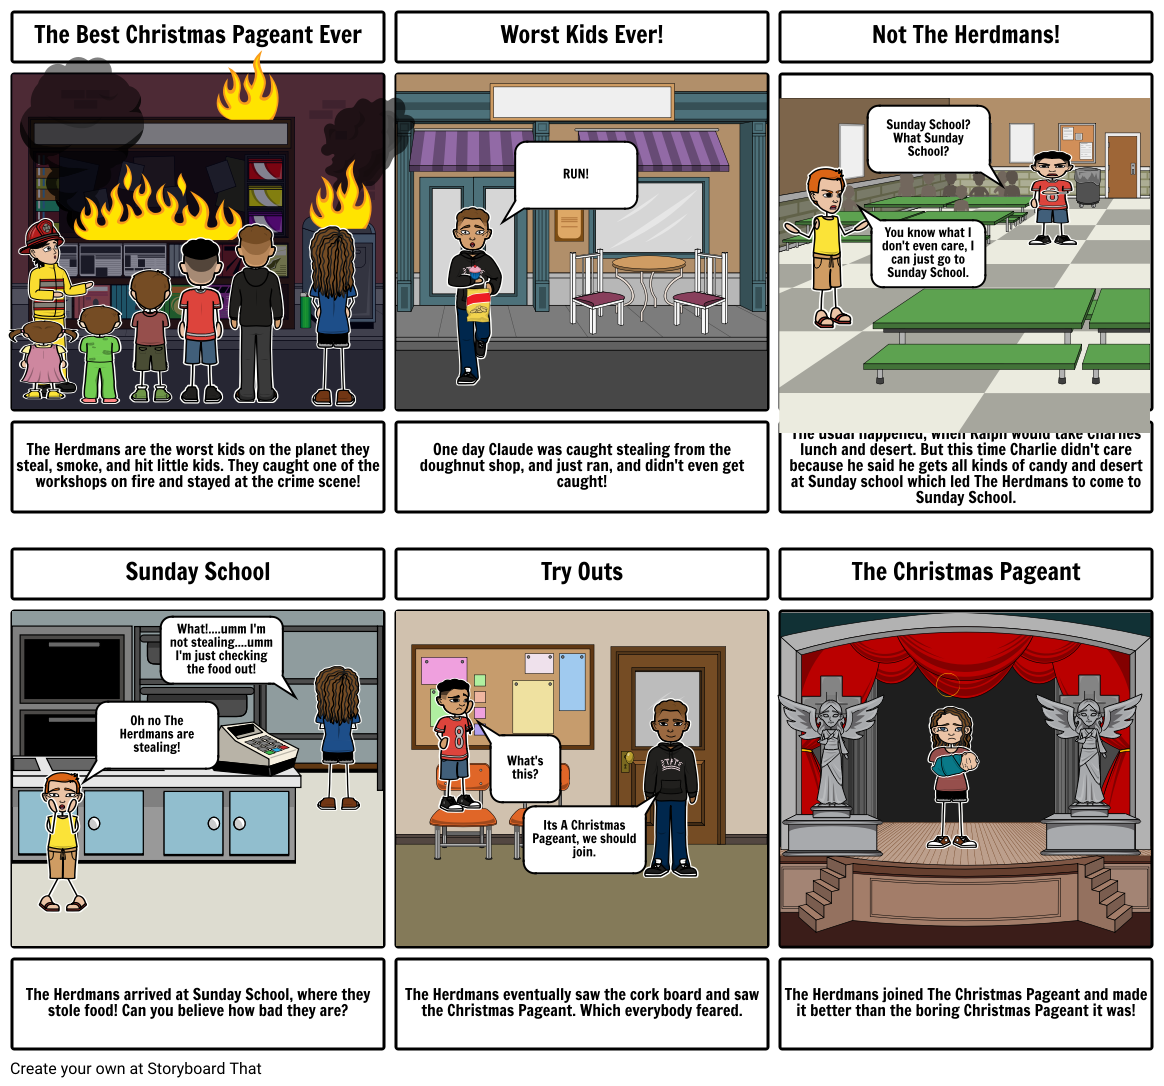 The Best Christmas Pageant Ever Storyboard111111111234567890